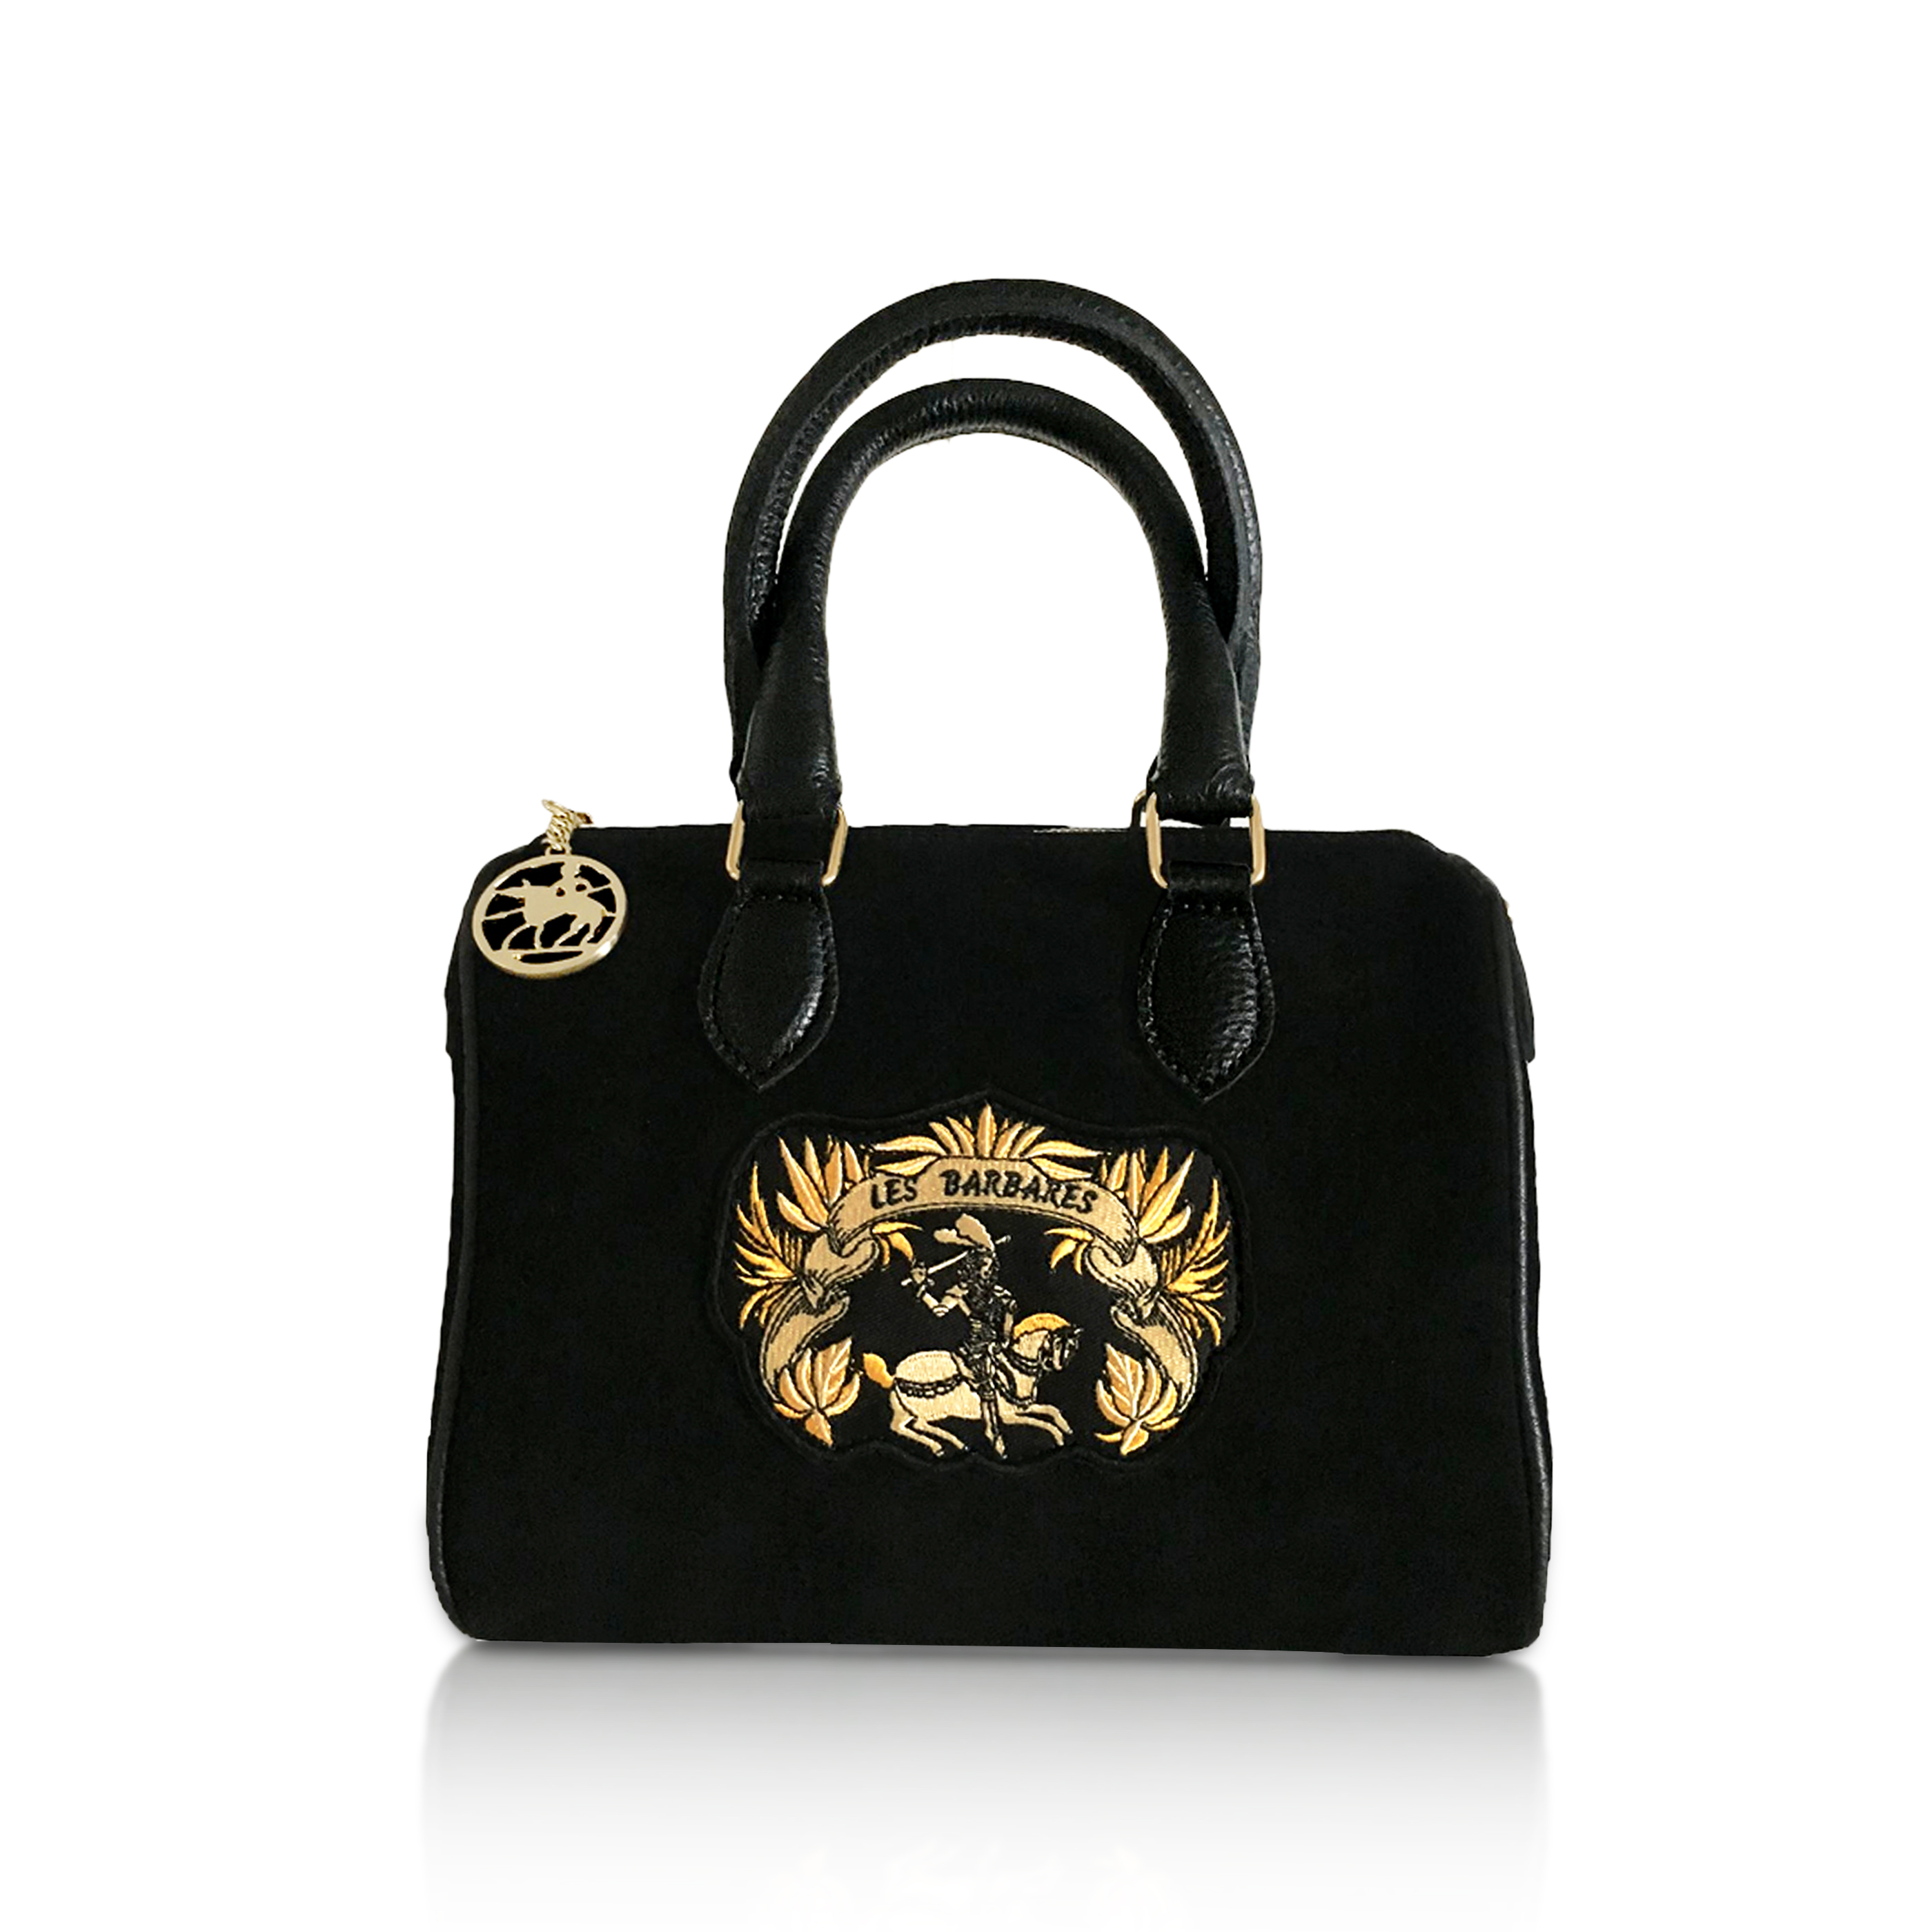 Godl is gold Handbag